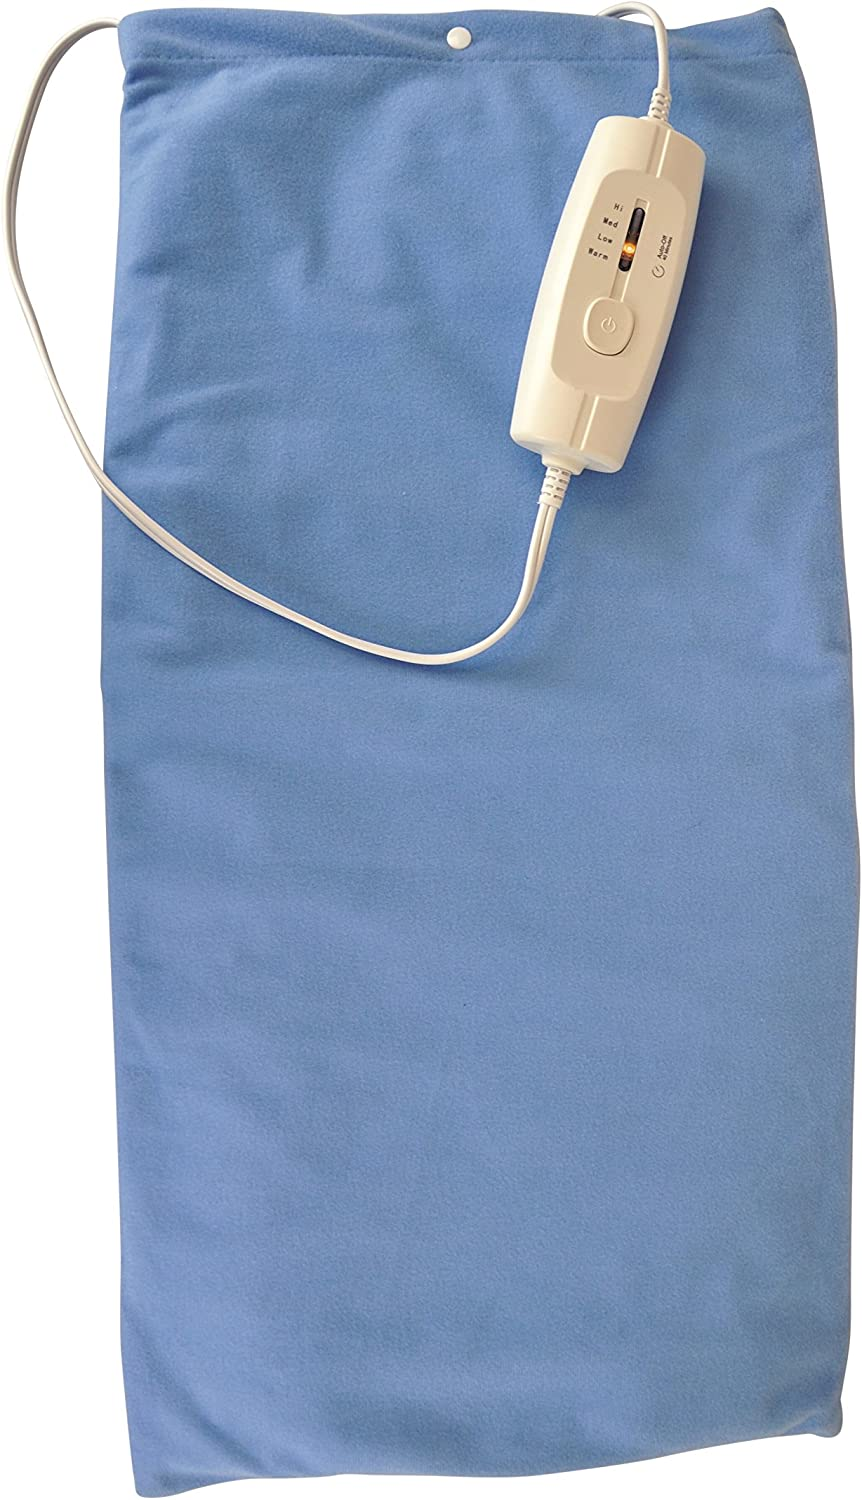 """Dry Heating Pad Full Body - King Size- 4 Setting Push Button with Auto Off Function - 12"""" x 25"""""""